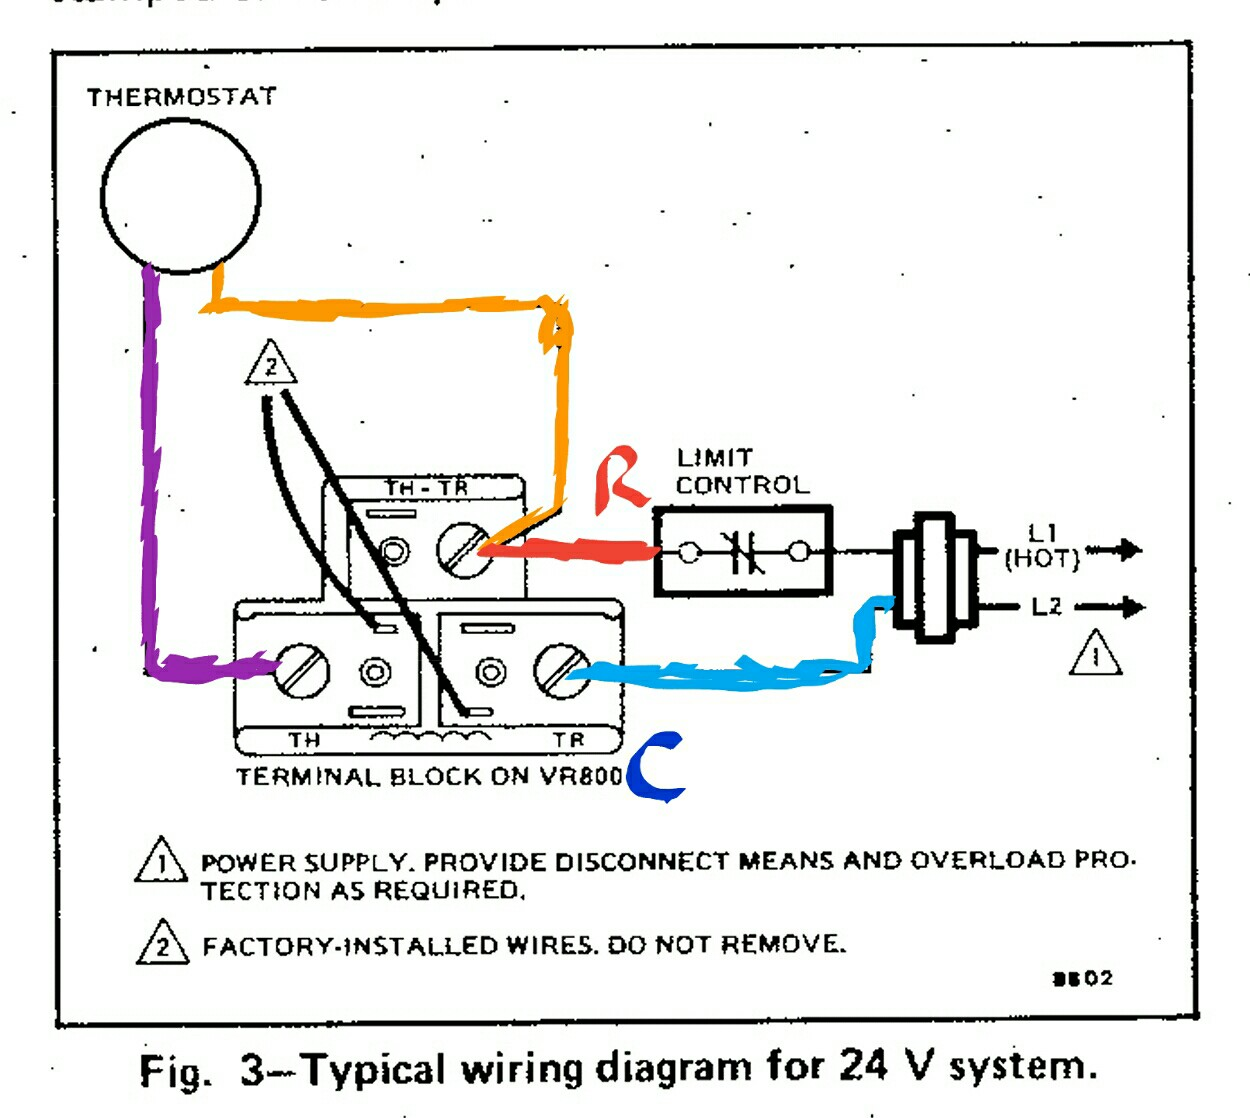 hight resolution of furnace gas valve wiring diagram share circuit diagrams furnace gas valve wiring